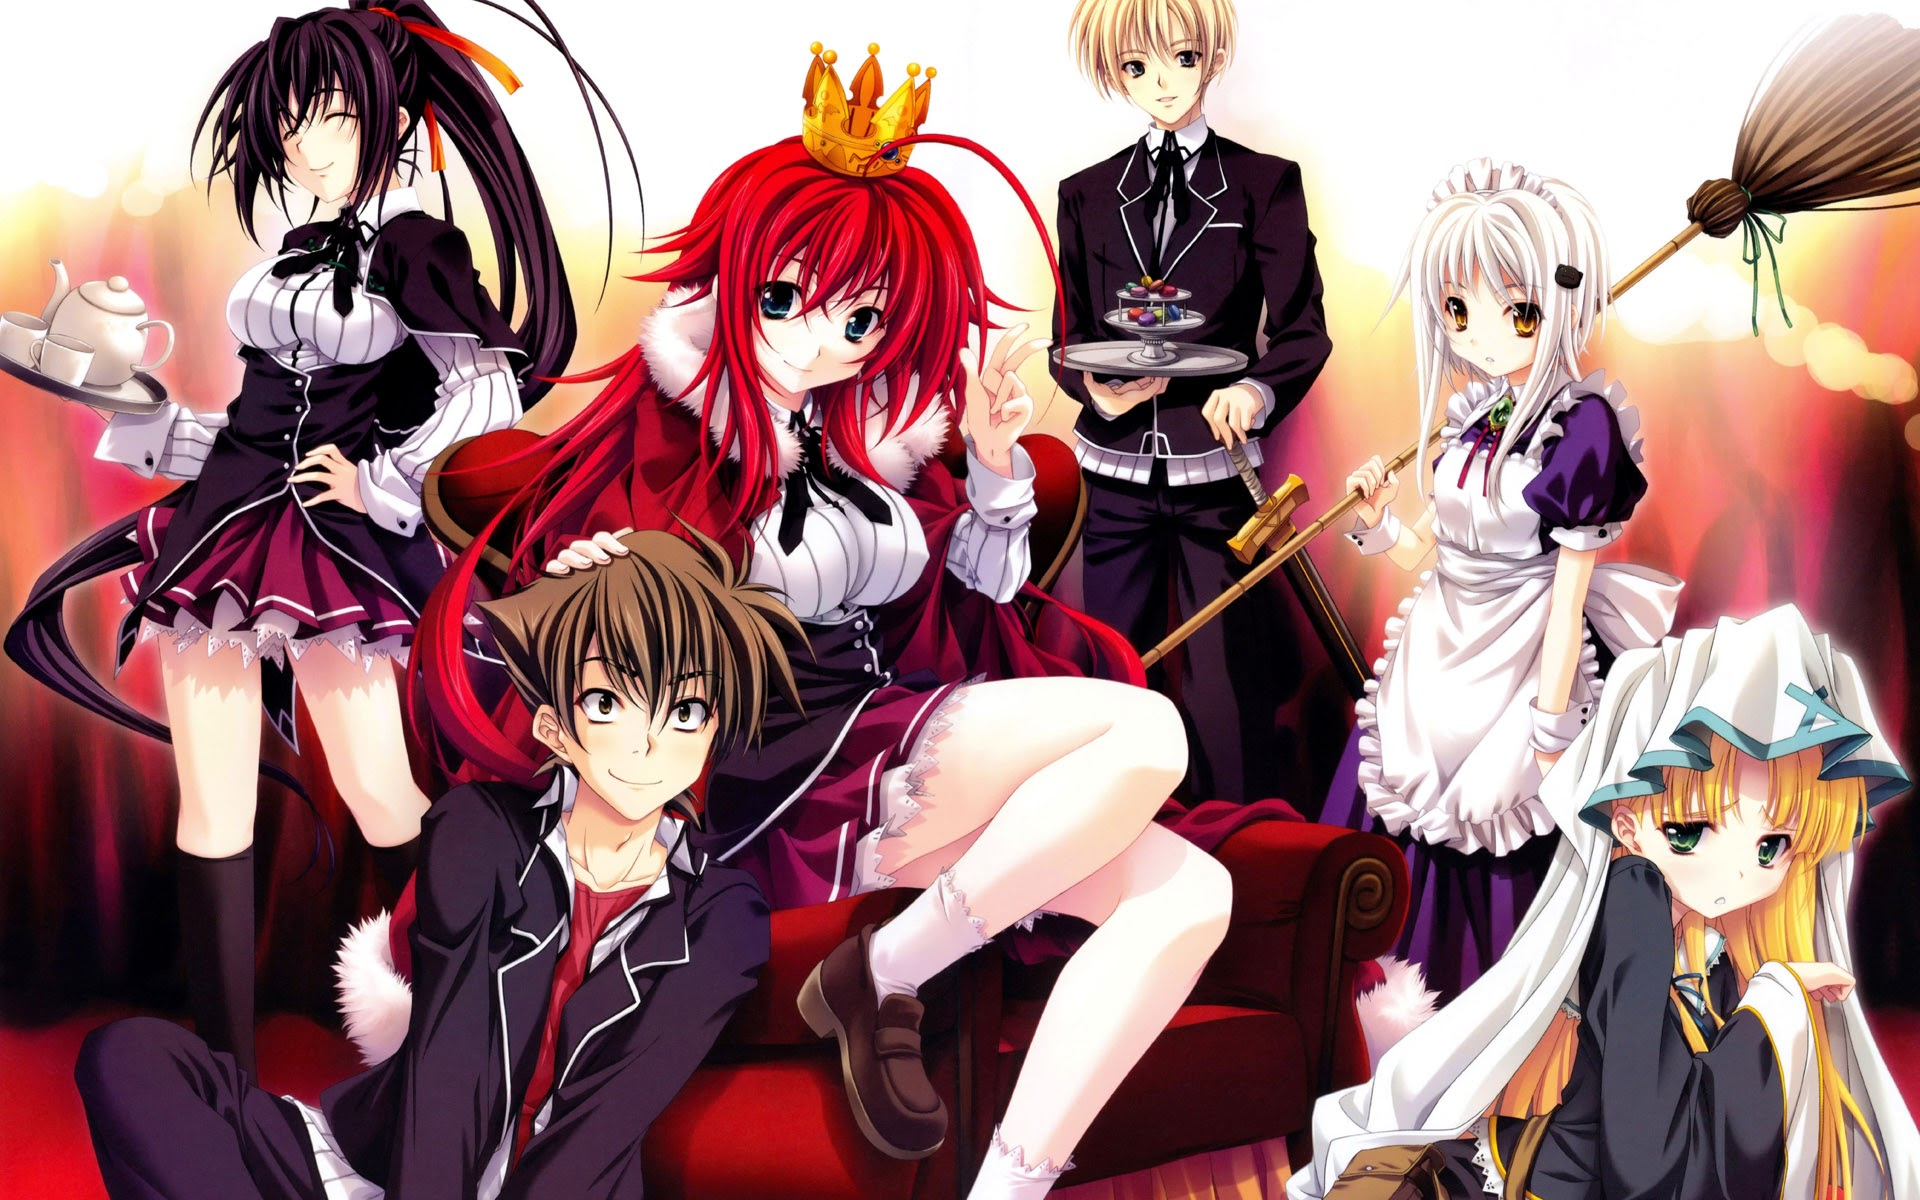 high-school-dxd-hd-wallpaper-1920x1200.j